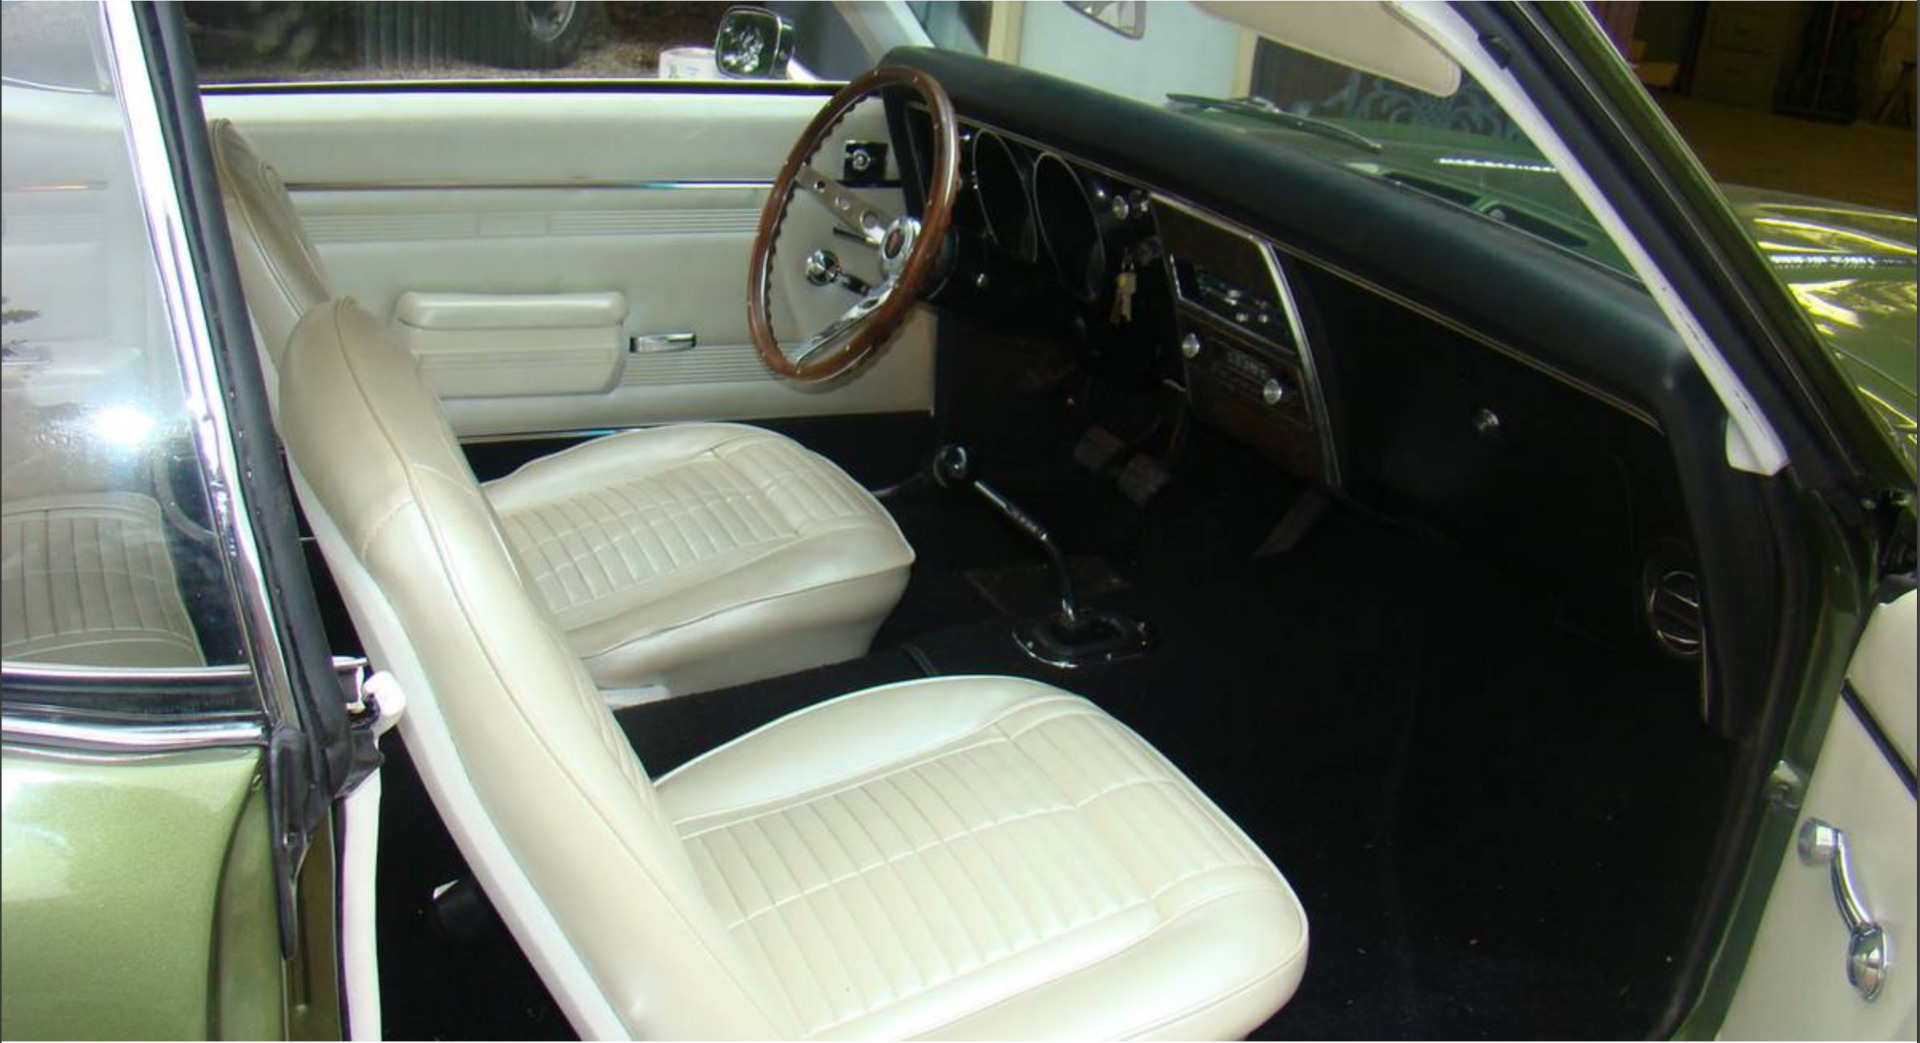 Used 1968 Pontiac Firebird Sprint -NUMBERS MATCHING-FRESH RESTORATION | Mundelein, IL